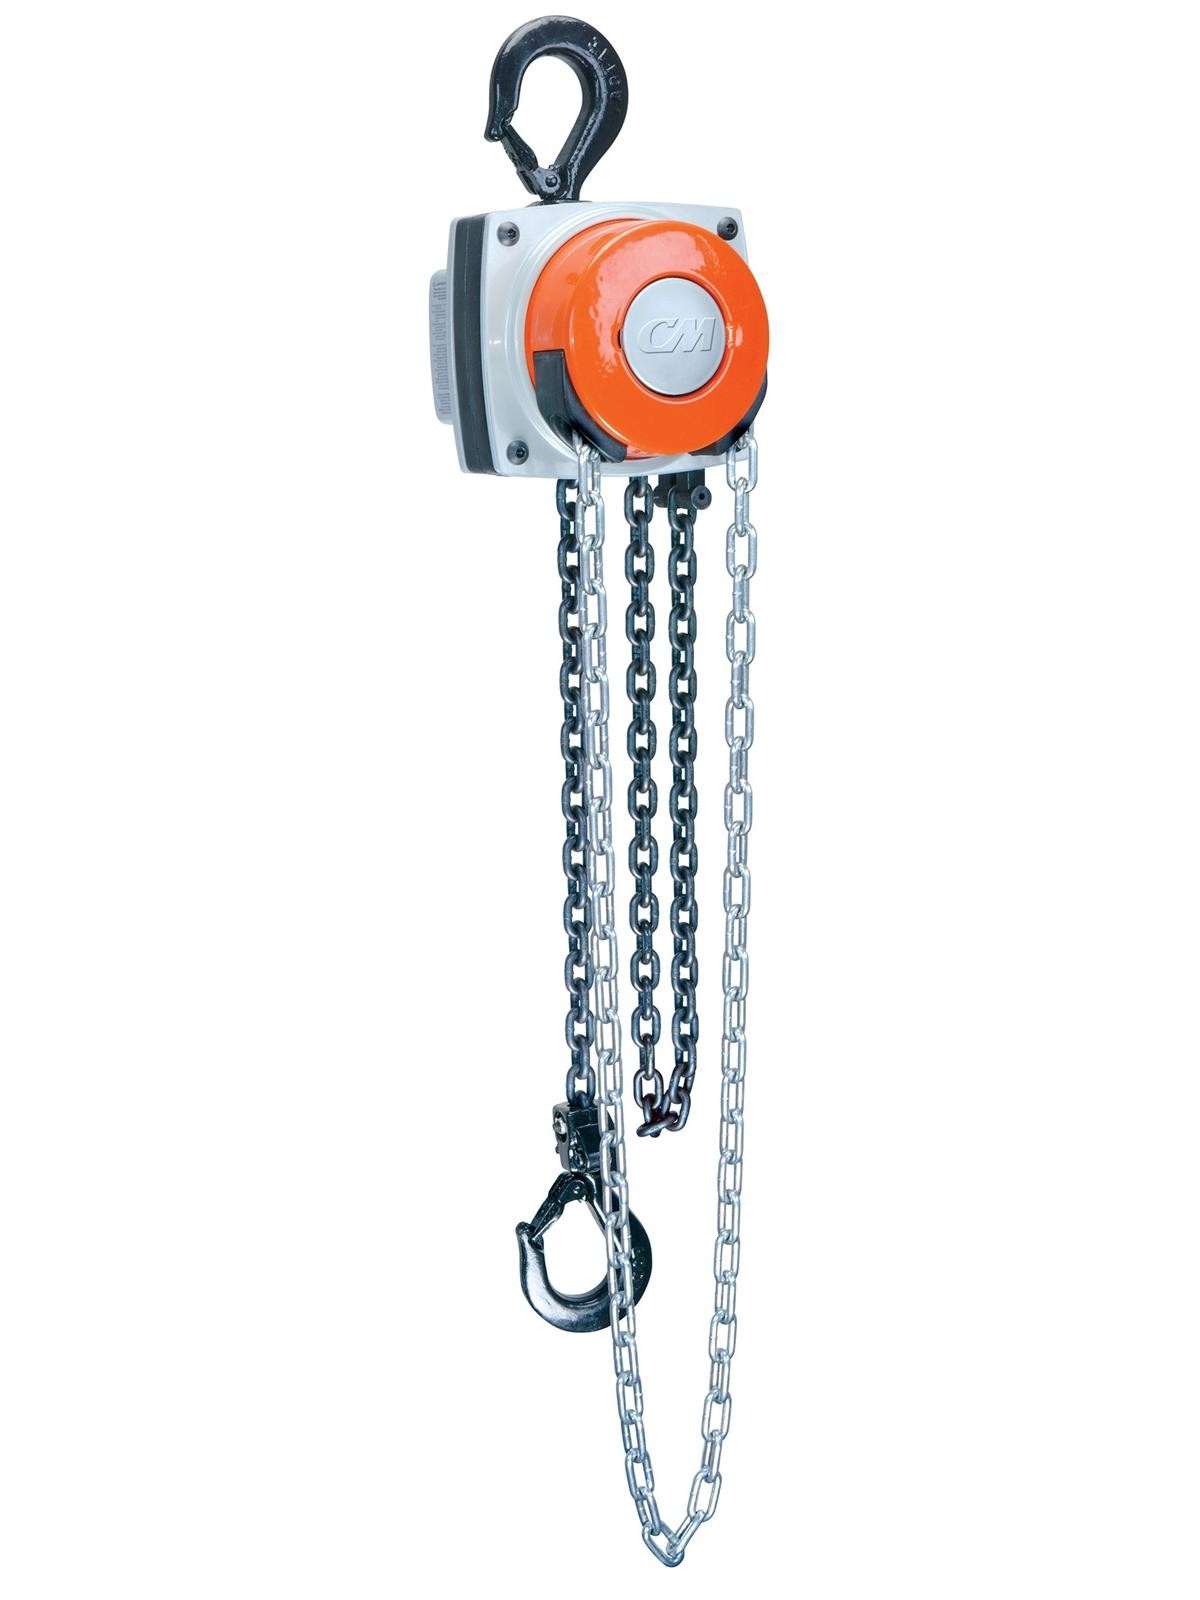 CM - HURRICANE360 1/2 Ton Hand Chain Hoist (30' Lift / 28' Drop)